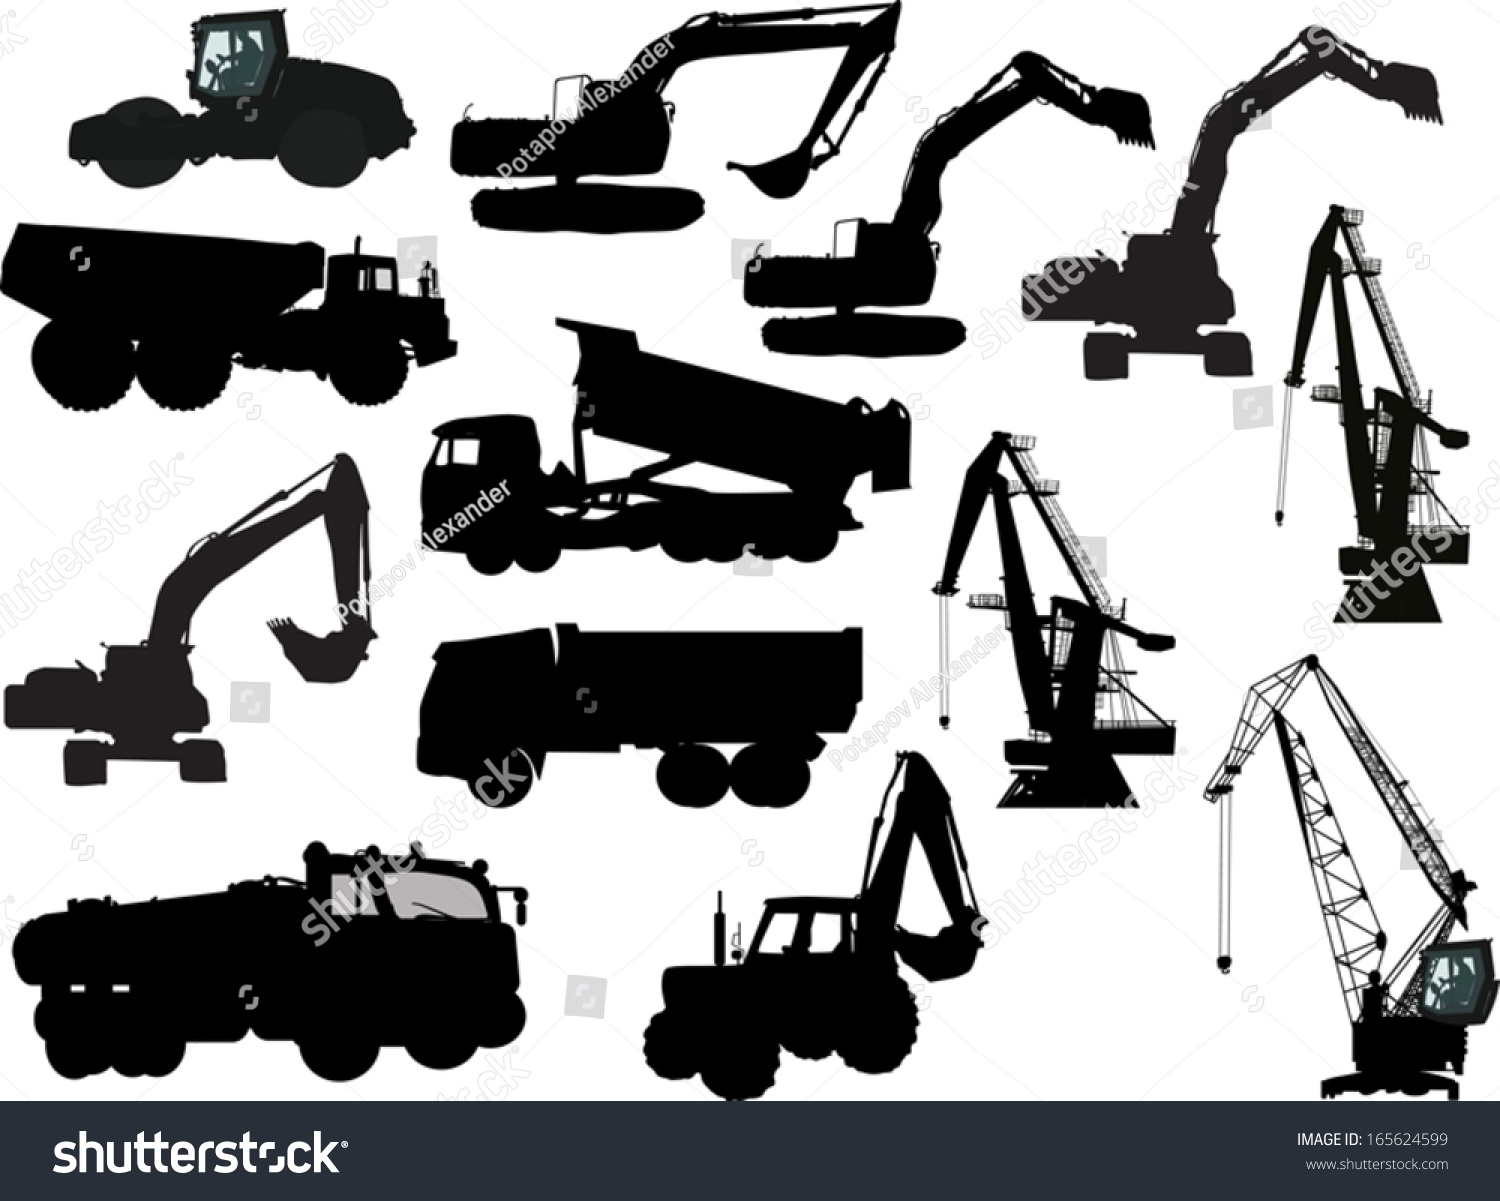 Heavy Equipment Silhouette : Illustration heavy machinery silhouettes isolated on stock